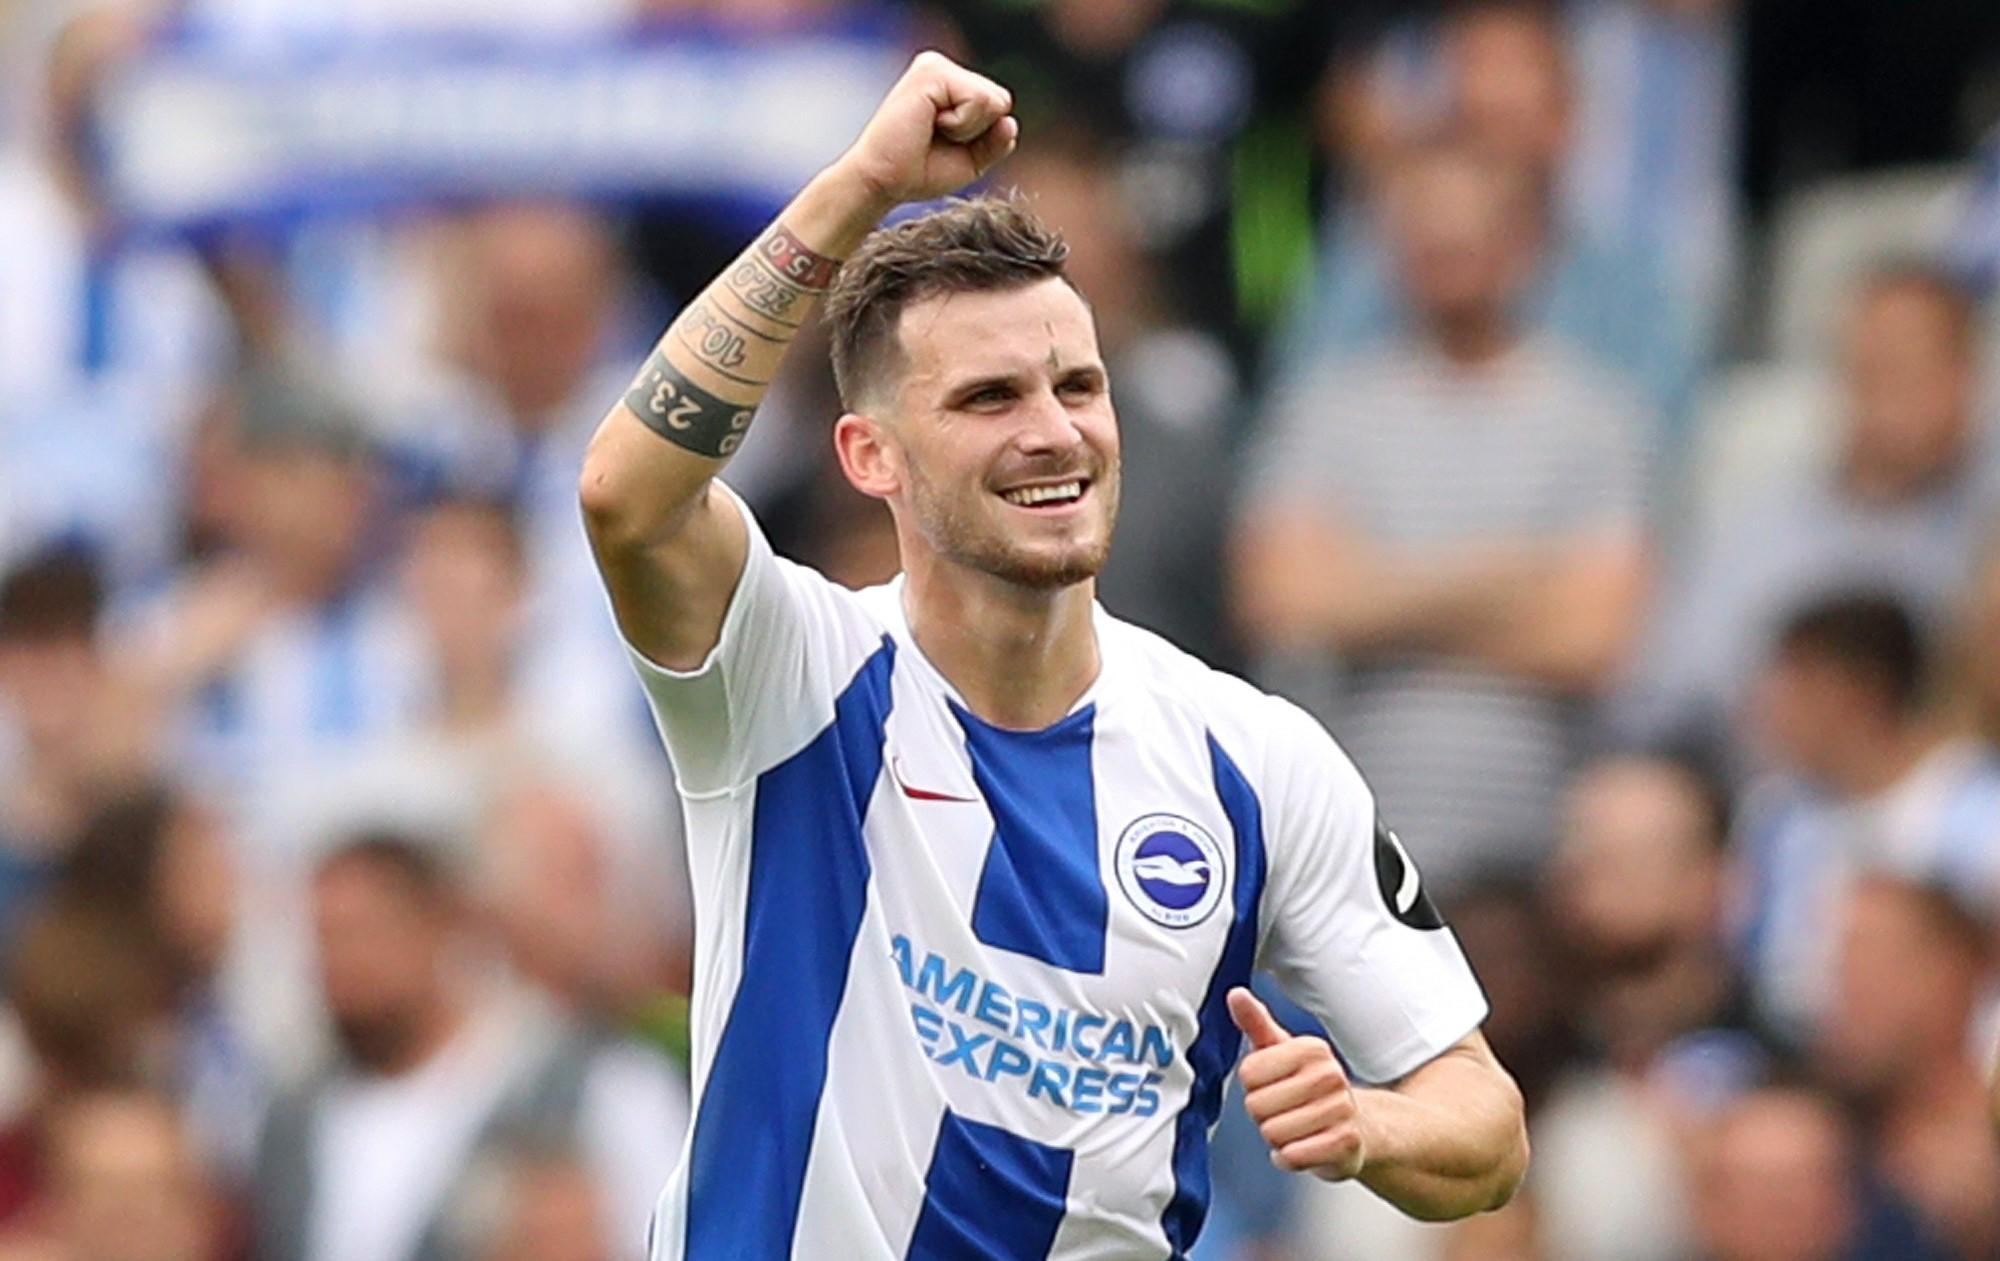 Pascal Gross, Brighton & Hove Albion A.F.C., Fantasy Premier League, Premier League, Gameweek 4, FPL, Fantasy Football, FPL Tips, FPL Tricks, Chelsea F.C., Pundit Picks, Marcos Alonso, Henrikh Mkhitaryan, Arsenal F.C., Romelu Lukaku, Manchester United F.C.